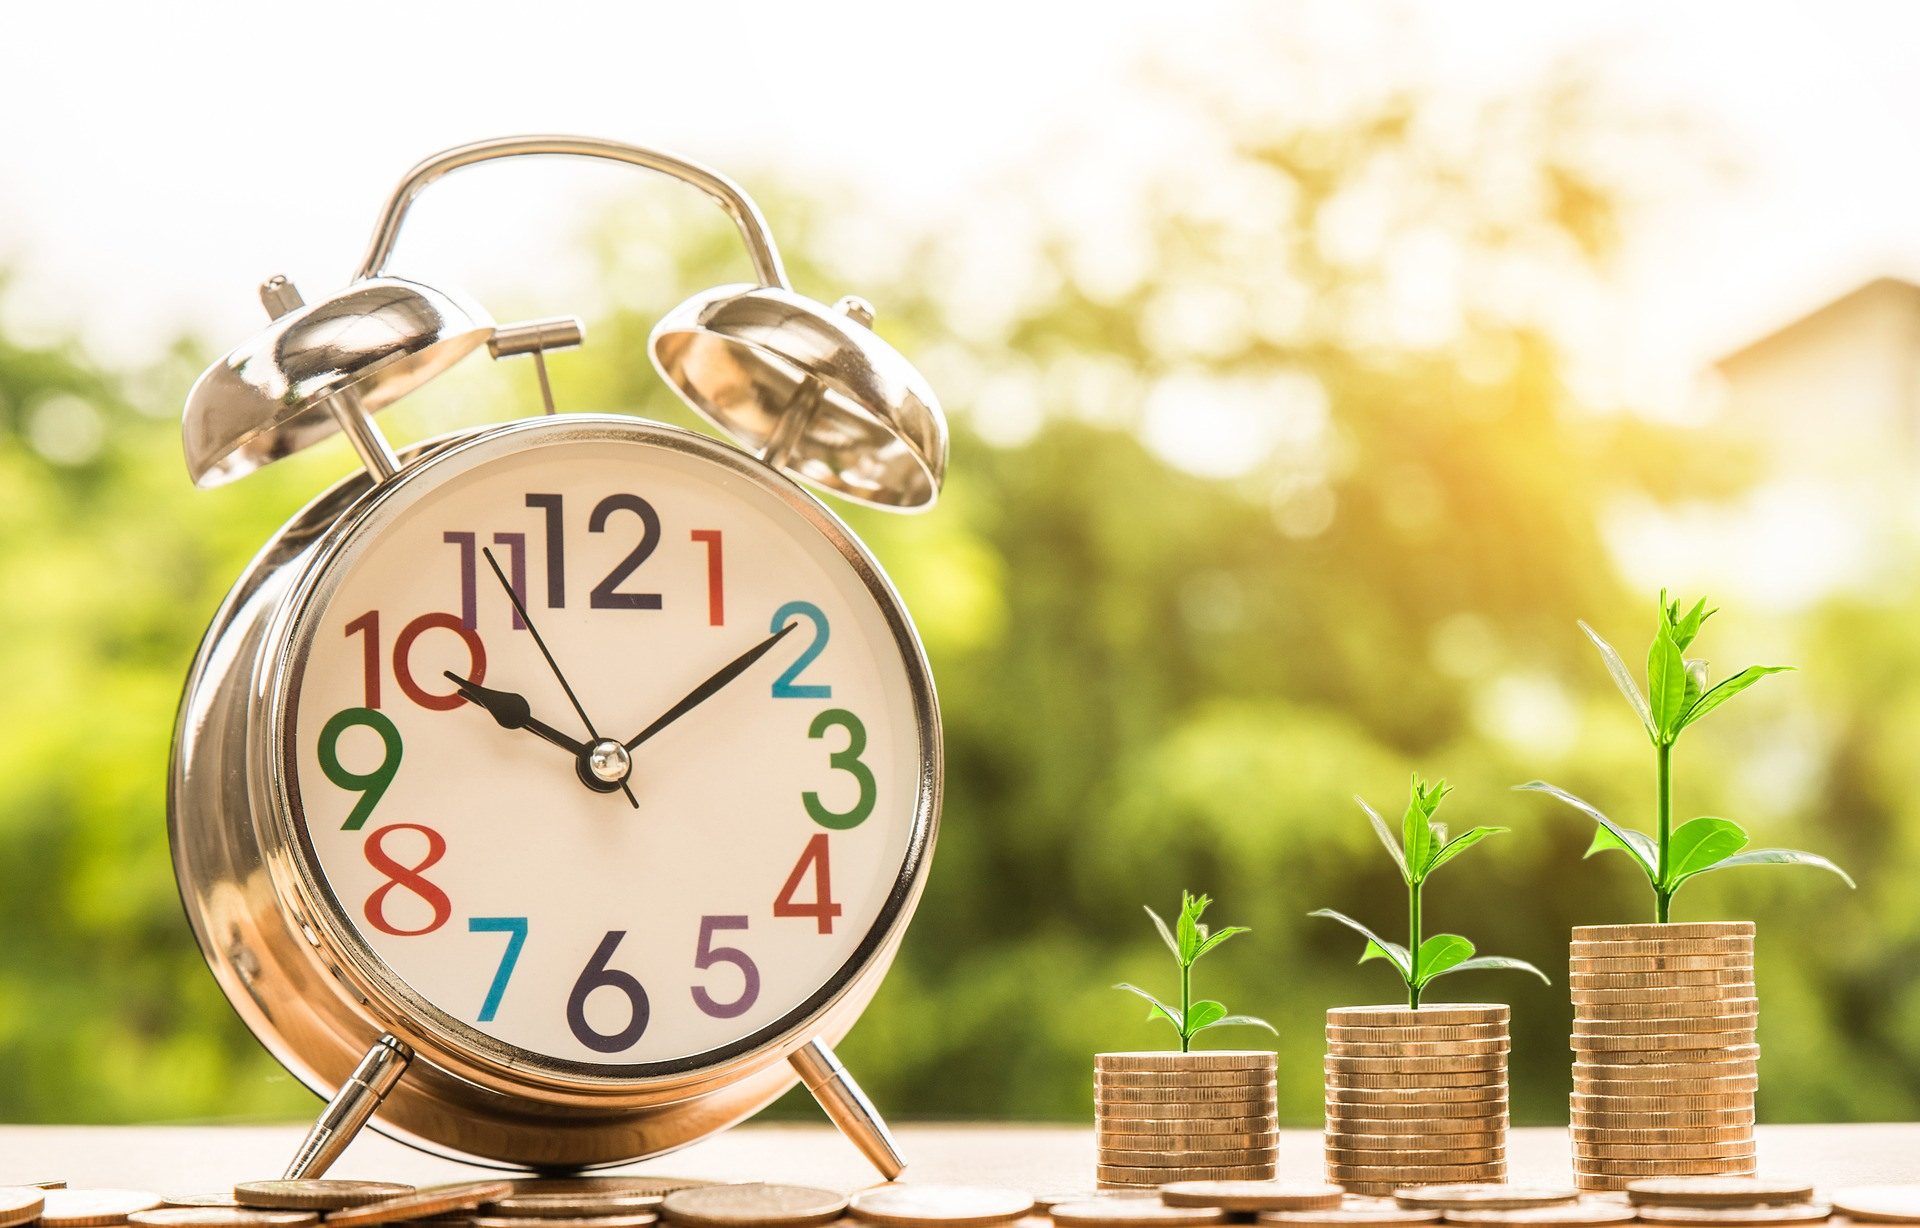 How to save money more efficiently?